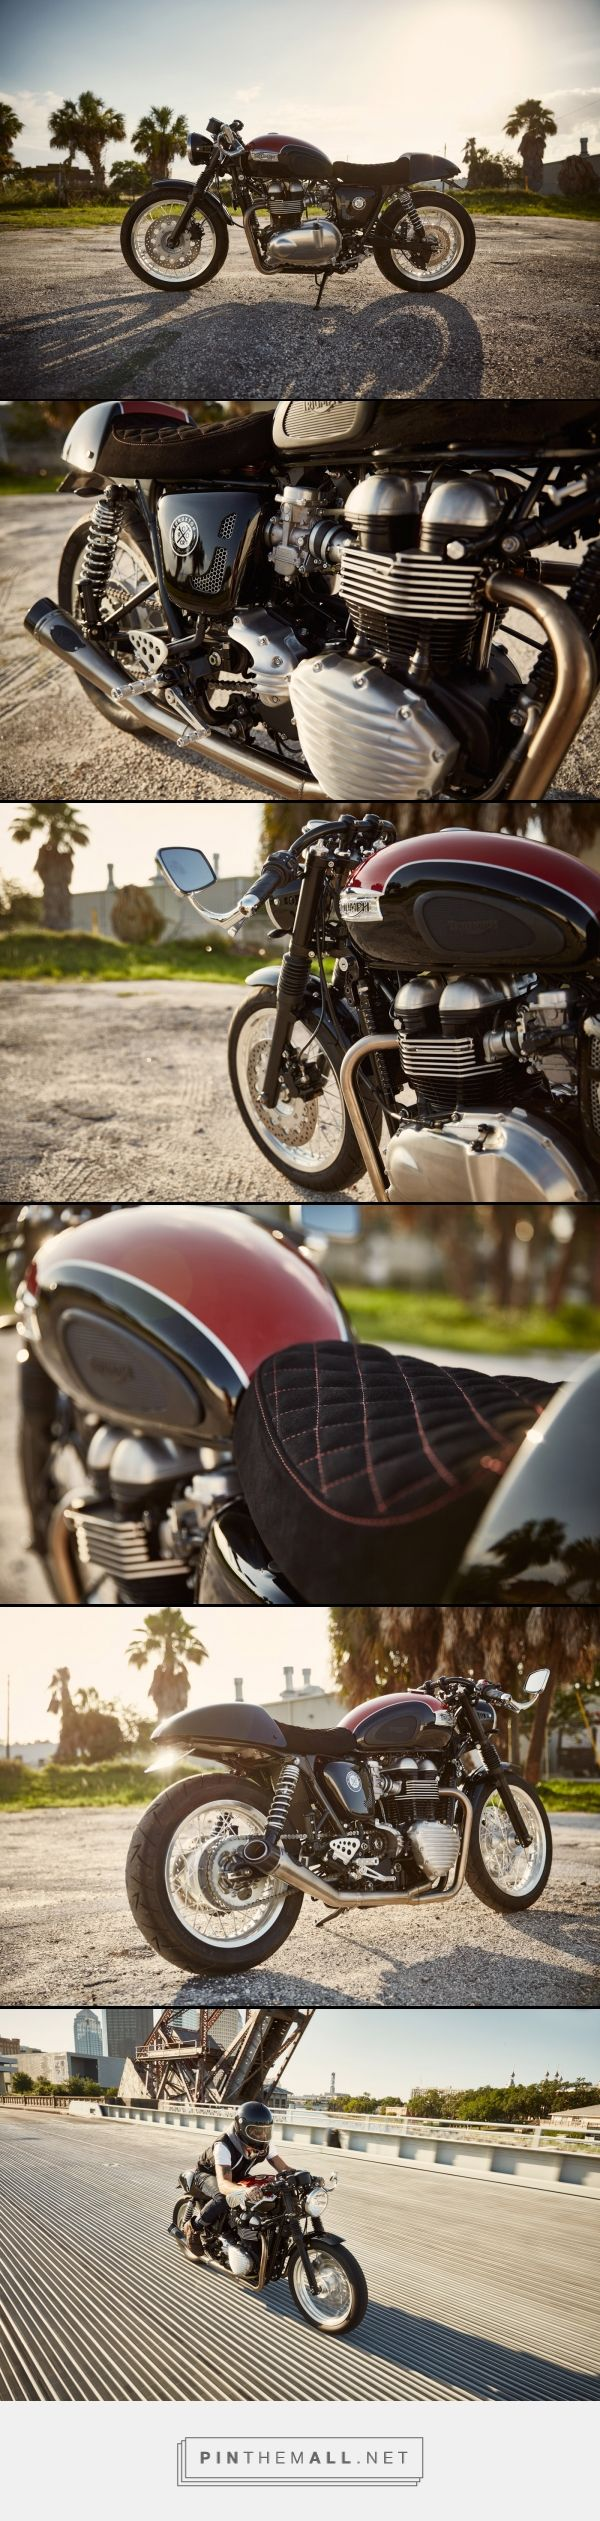 John Paul Michaels' Triumph Thruxton 900 [CFCM]